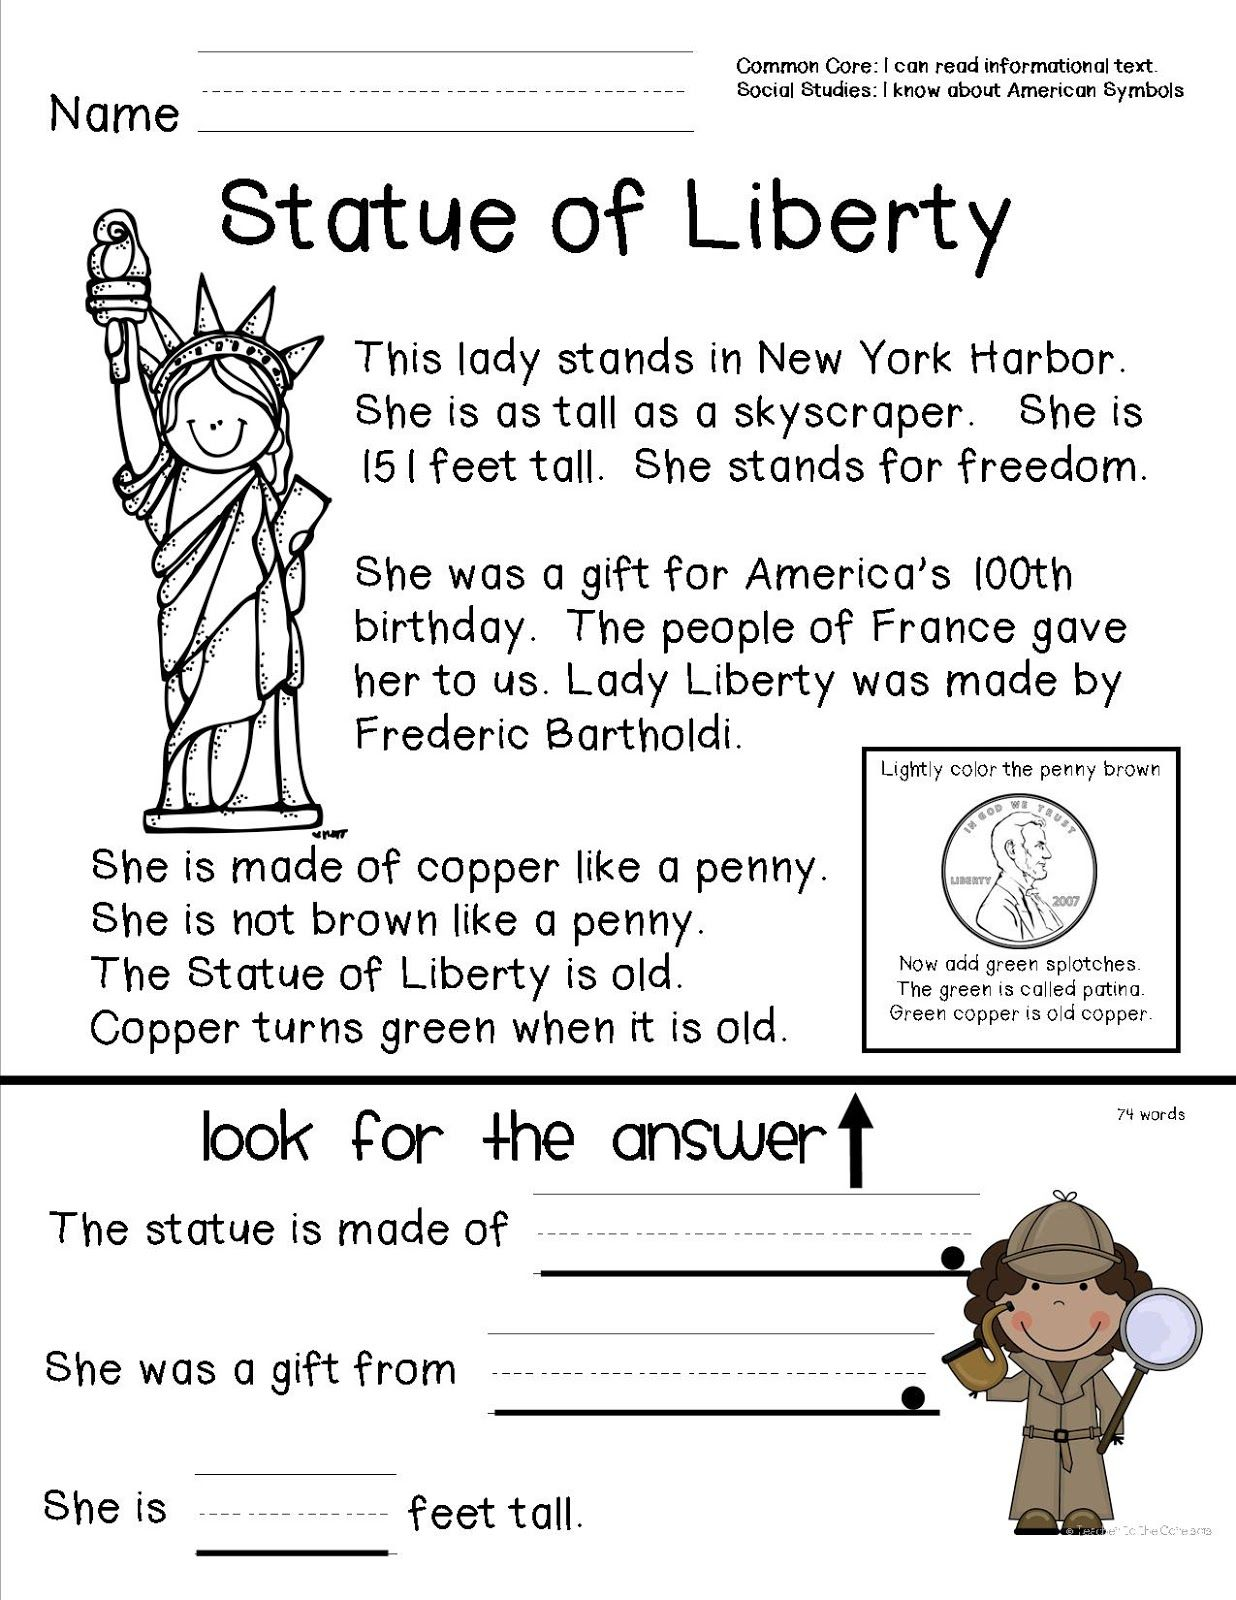 Worksheets American Symbols Worksheet reading comprehension sheet about the statue of liberty for primary american symbols dedicated oct